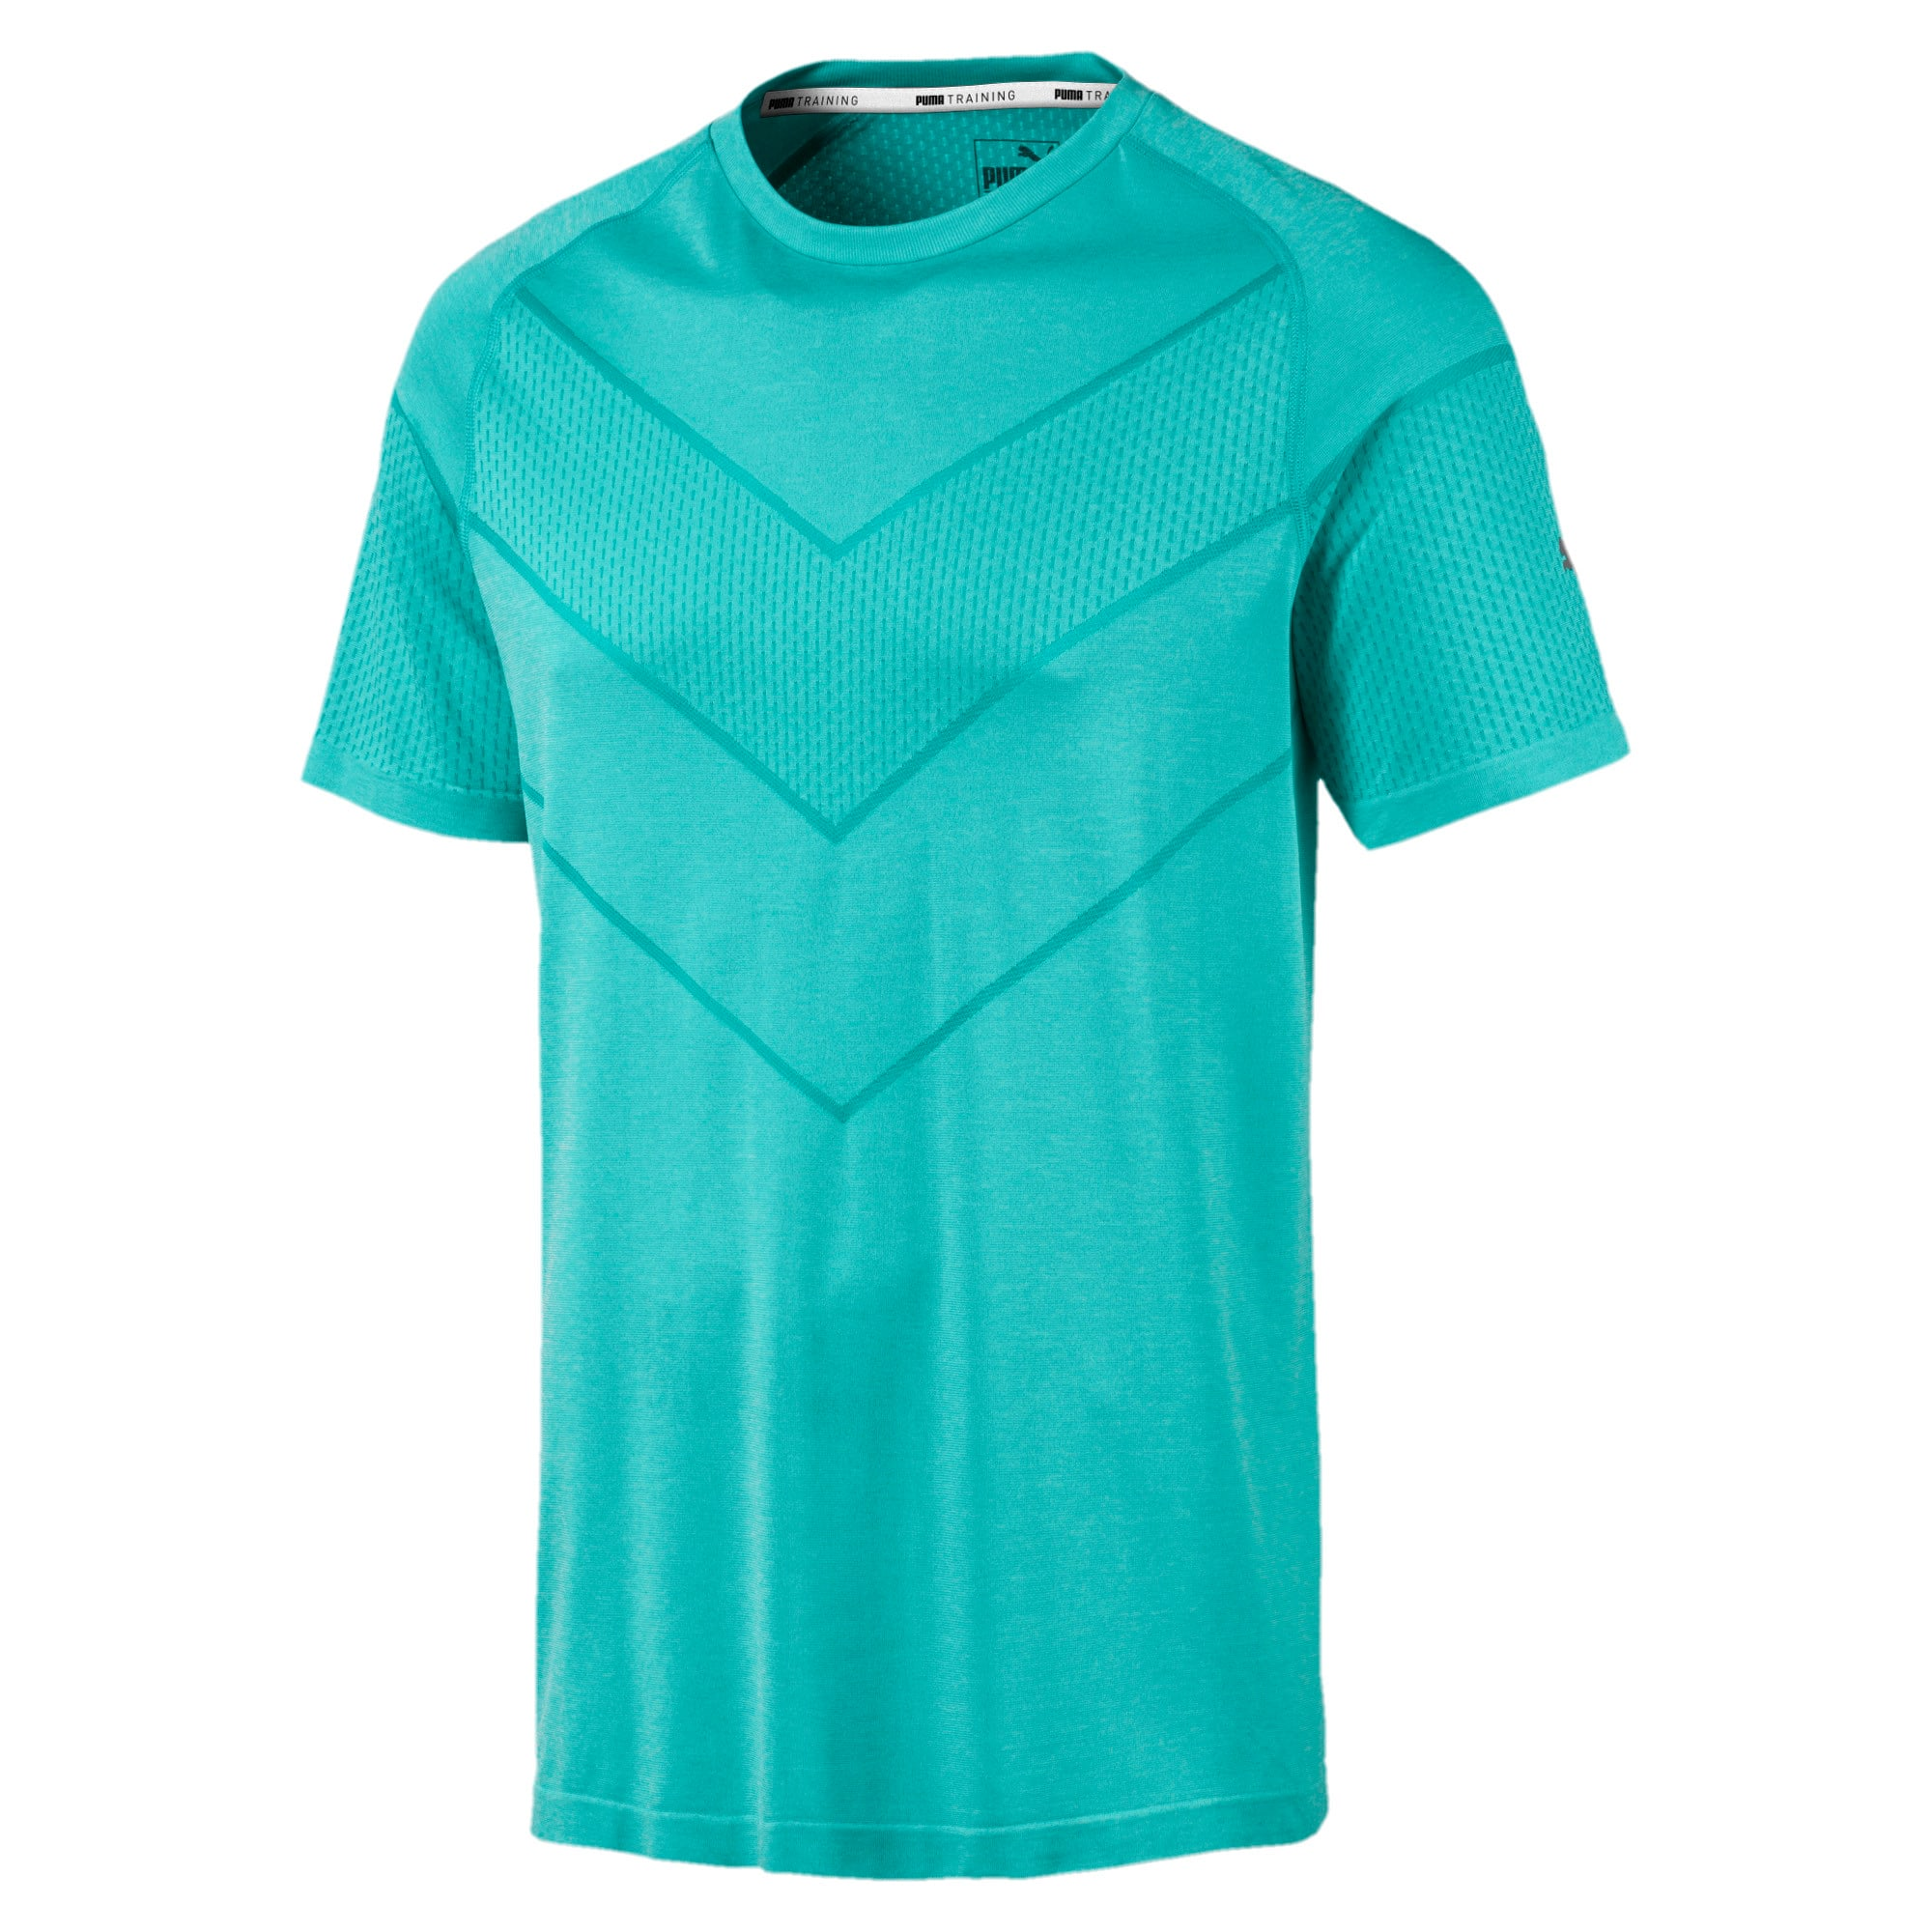 Thumbnail 4 of Reactive evoKNIT Men's Tee, Blue Turquoise Heather, medium-IND